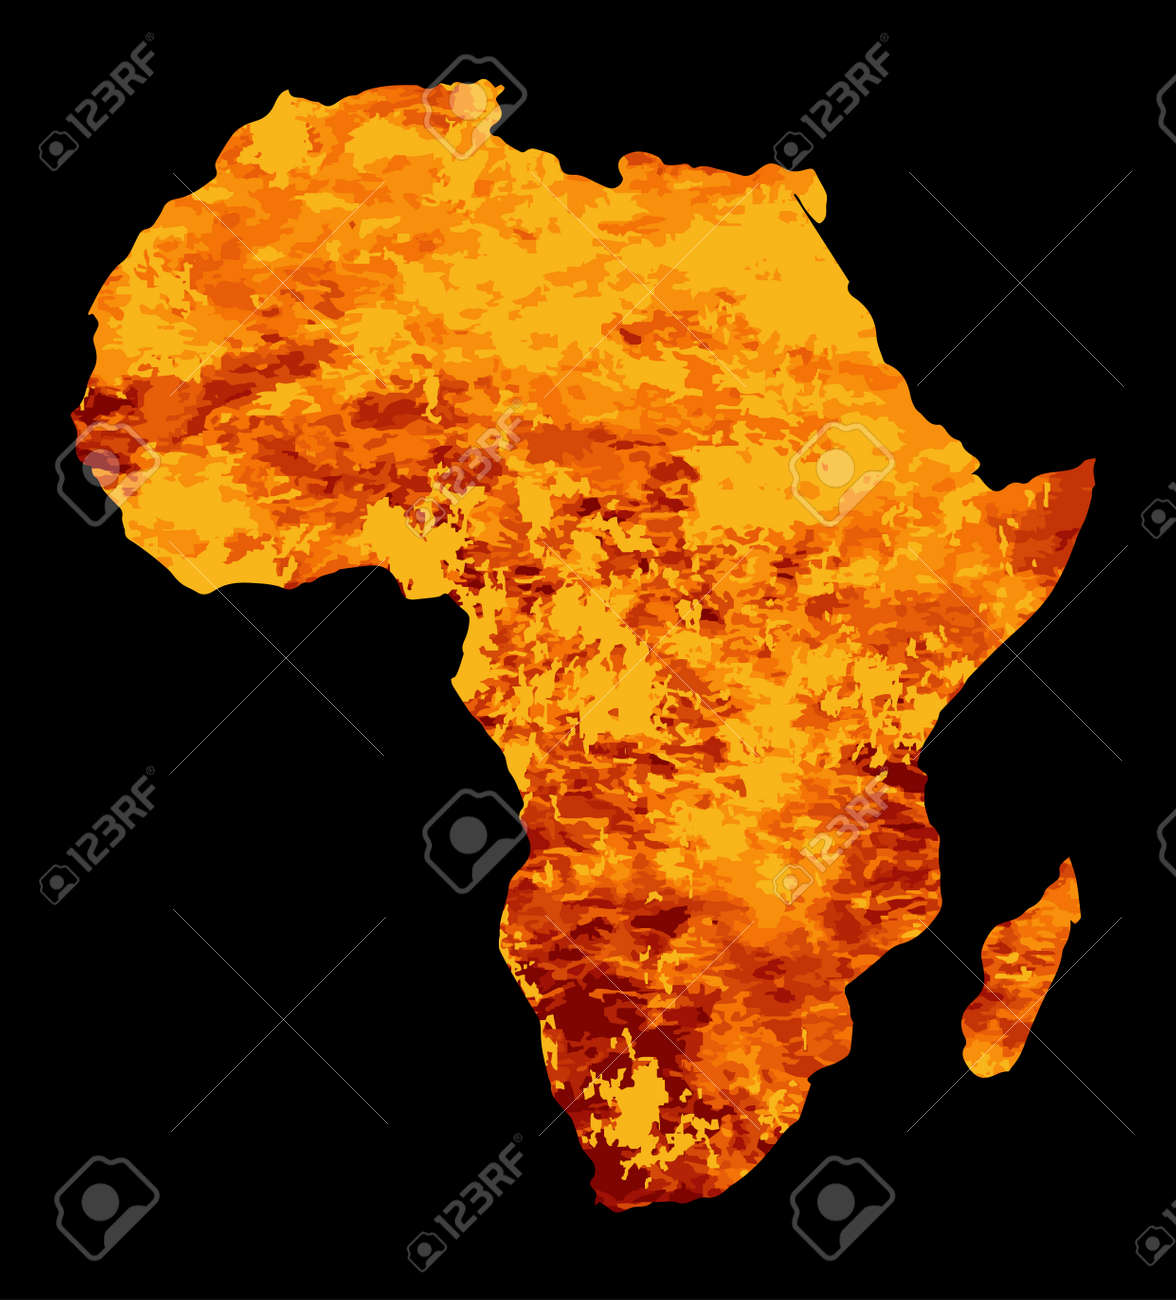 Silhouette Map Of Africa With Fire And Flames Inset Royalty Free